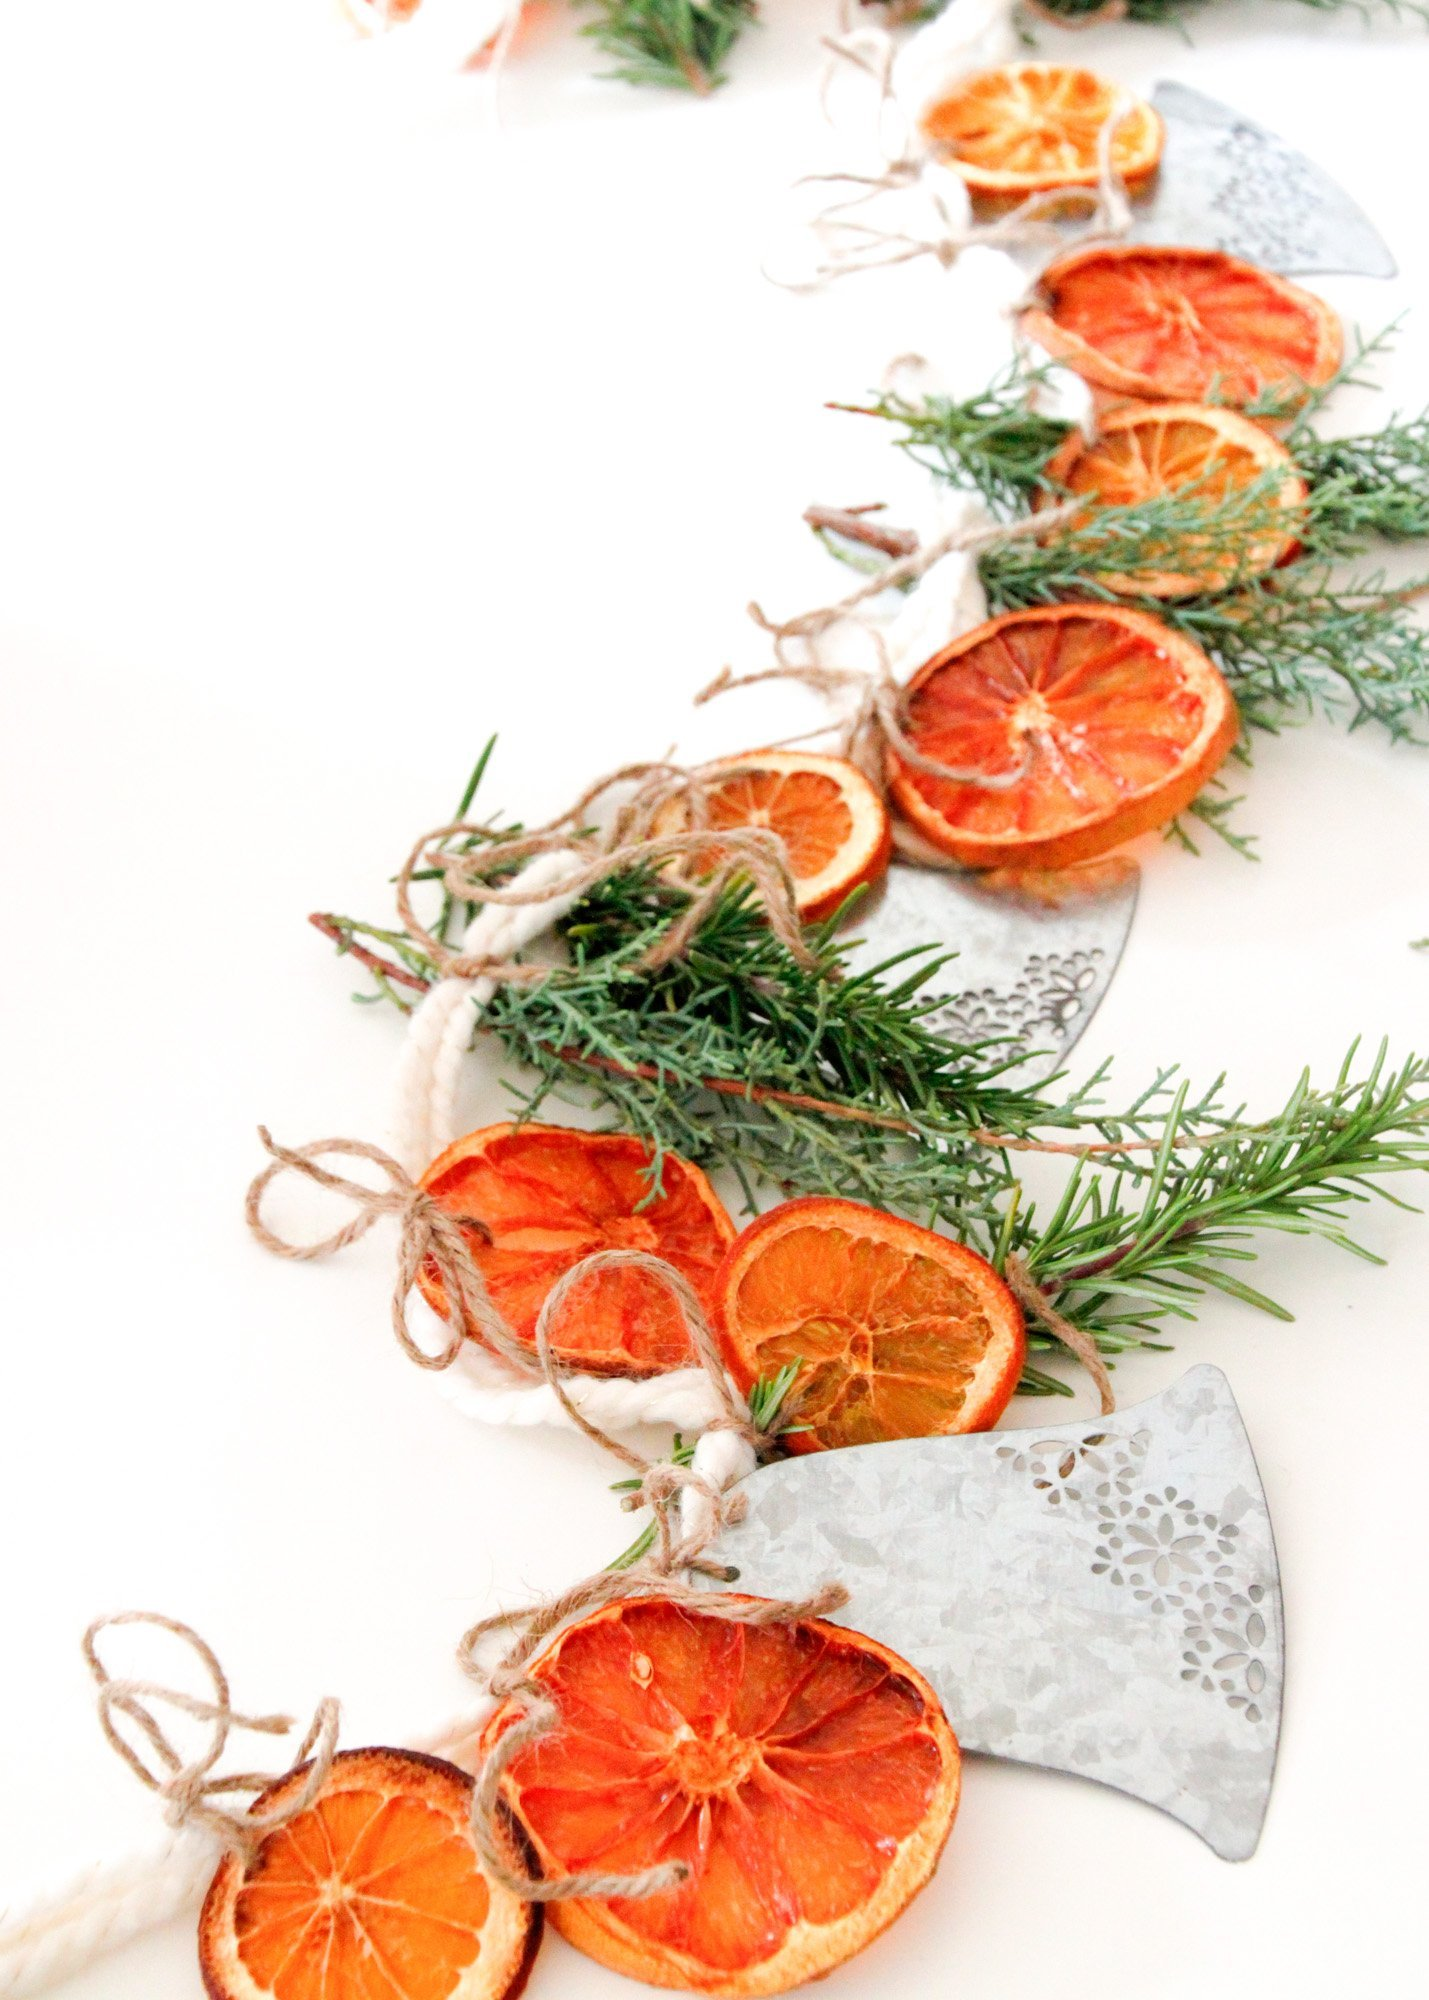 Make It A Simple Citrus And Herb Garland Tilly S Nest